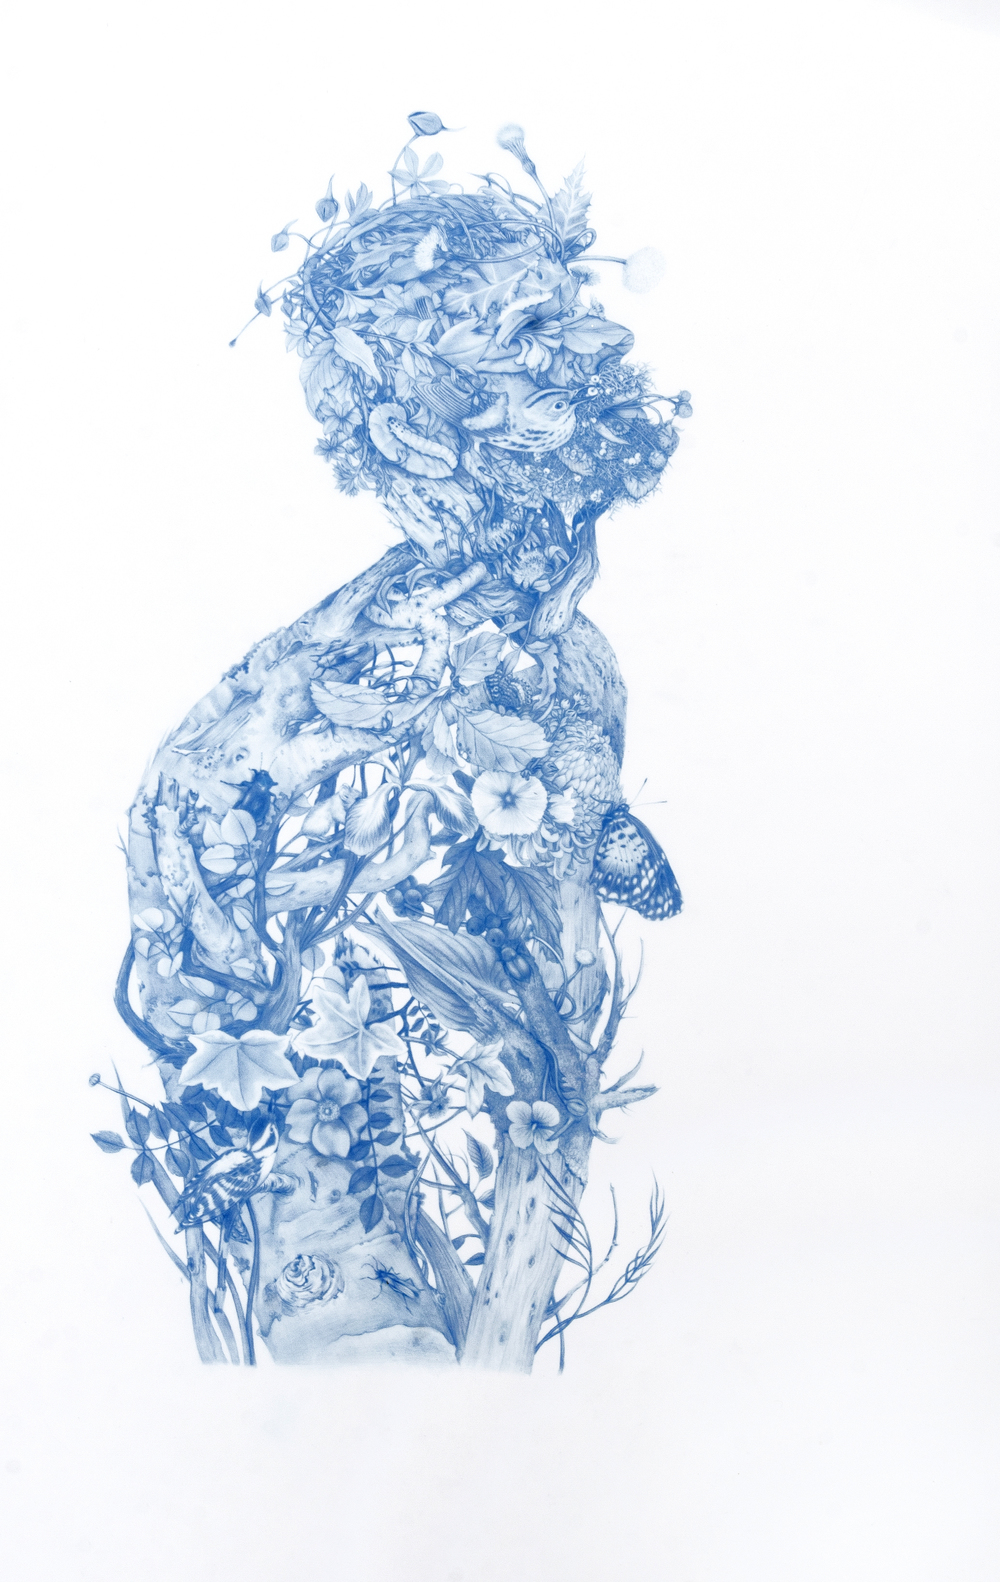 Zachari Logan, Green Man, 2014 blue pencil on mylar, 28 x 18 inches